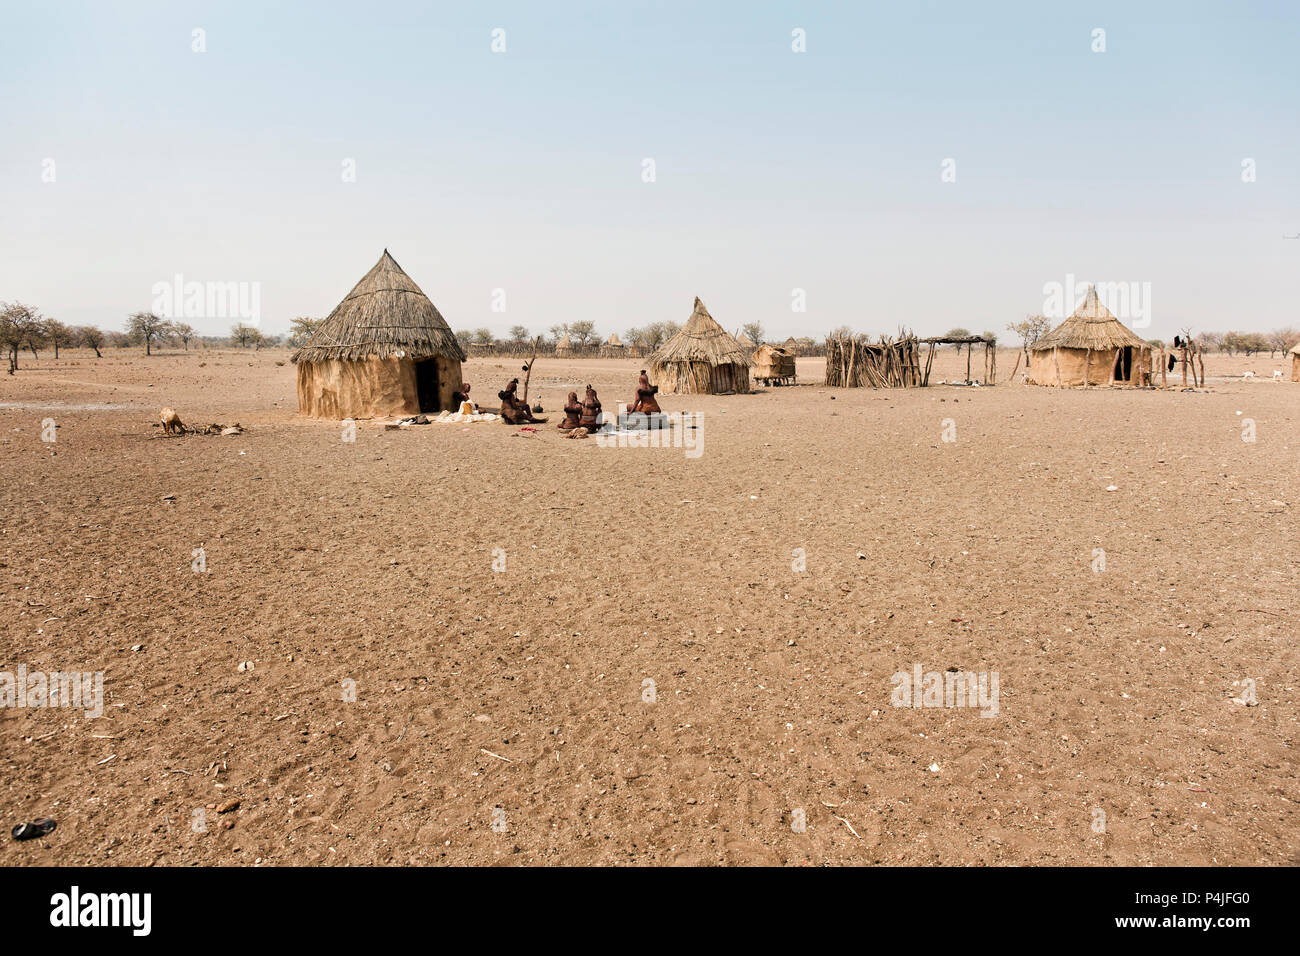 Himba village with traditional huts near Etosha National Park in Namibia, Africa - Stock Image